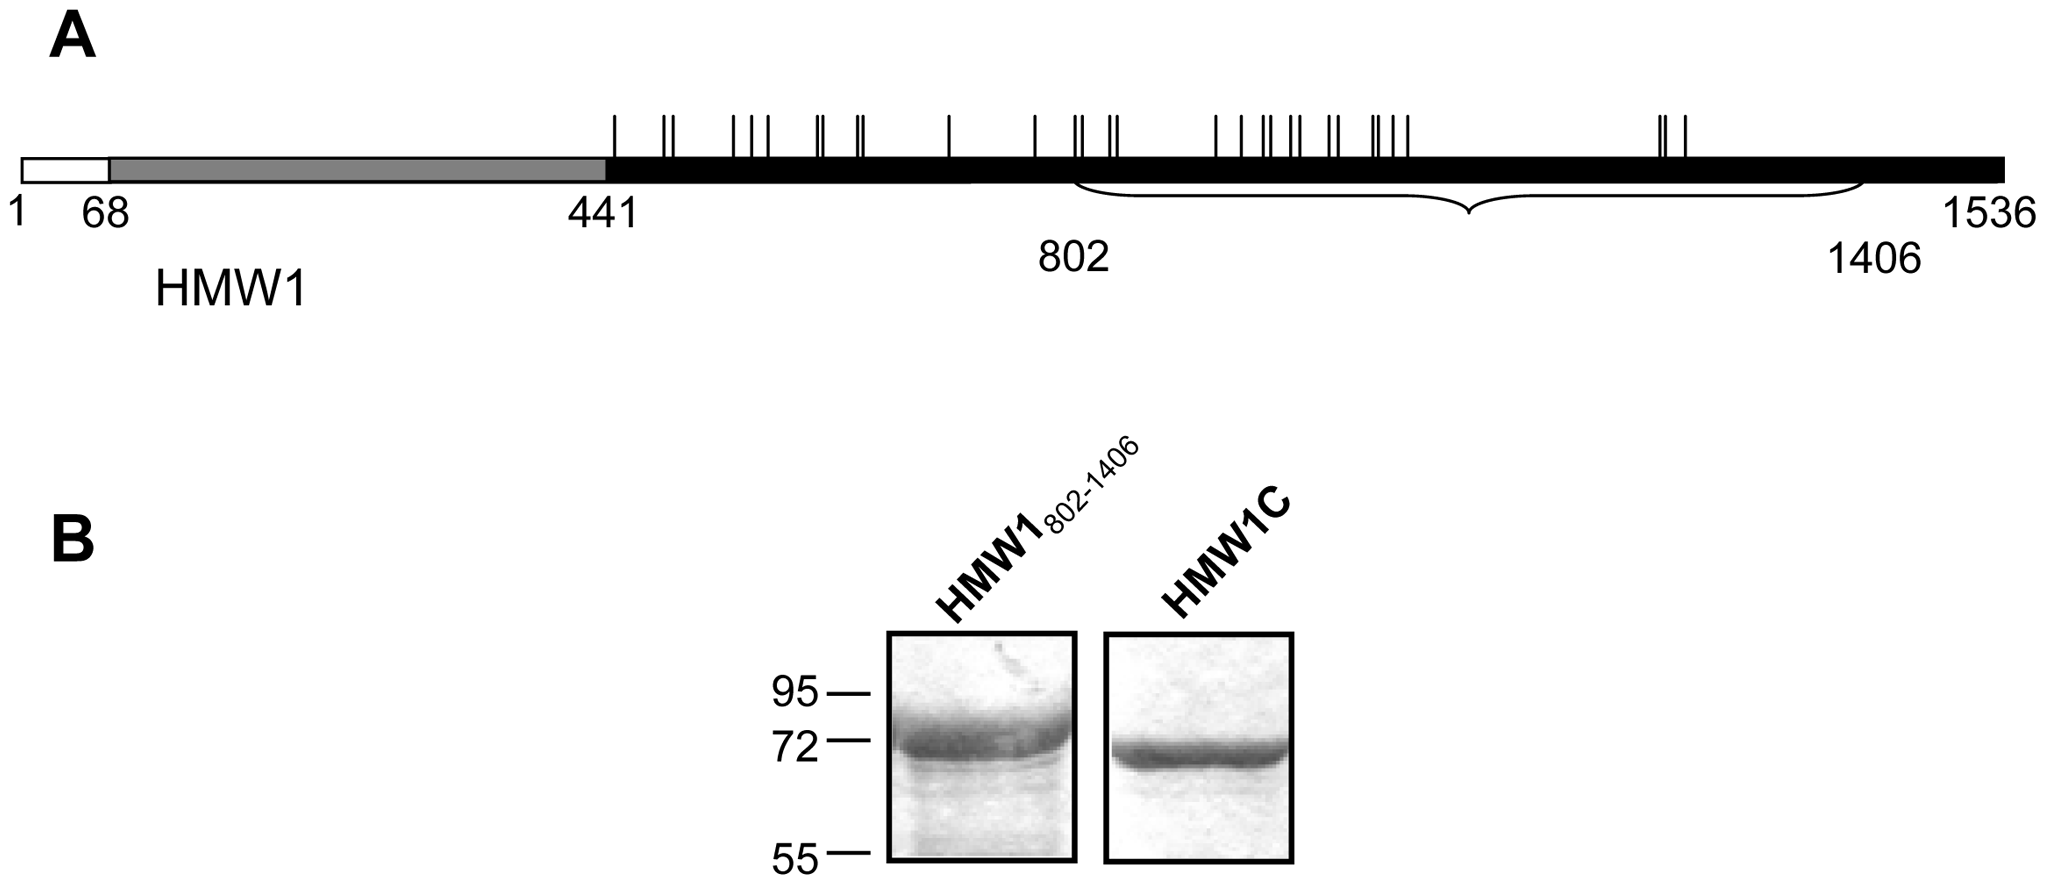 Purified proteins for examination of glycosylation of HMW1.